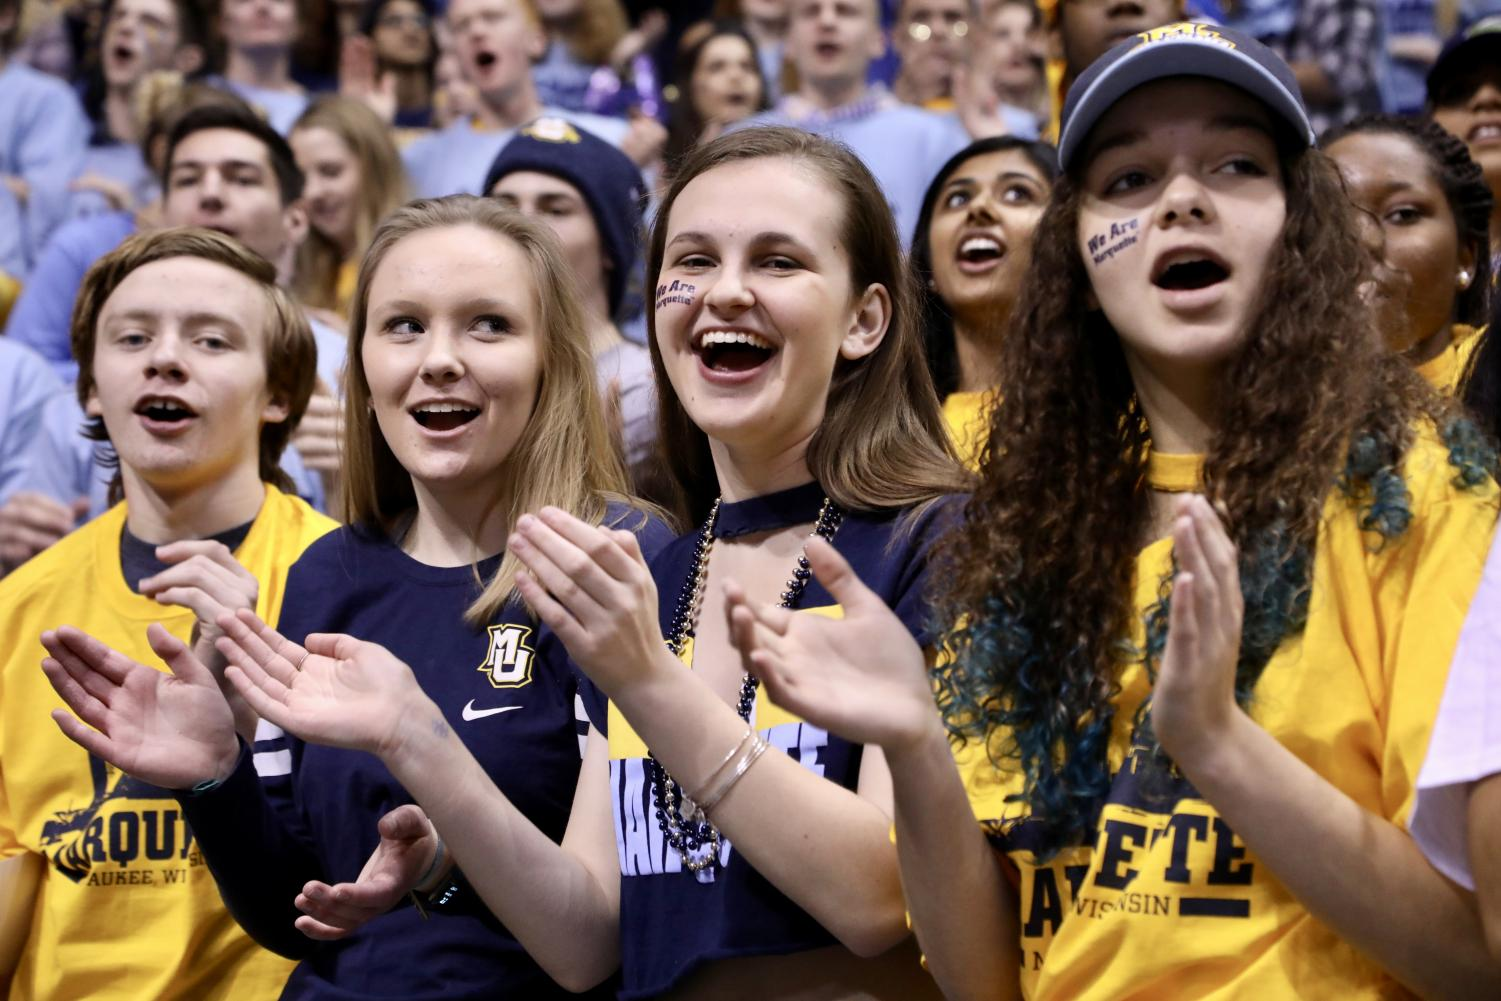 Students cheer on the Golden Eagles at Saturday's National Marquette Day game.